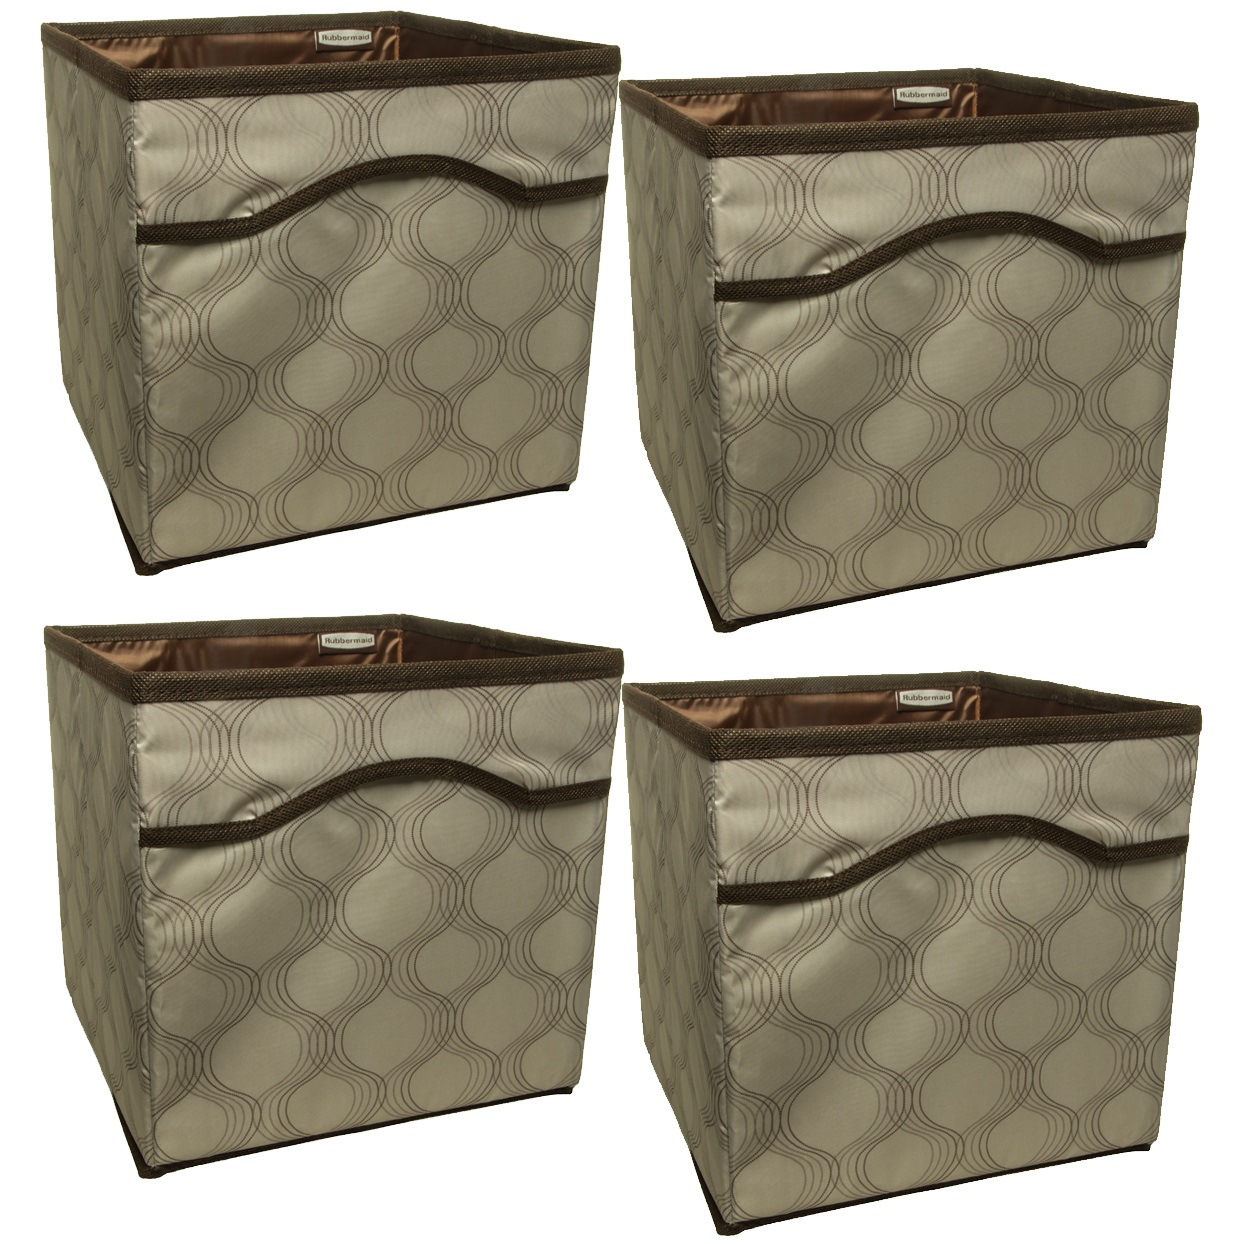 4 Pack Rubbermaid Collapsible Beige Canvas Basket Storage Containers Cubes Bins Folding Set  sc 1 st  Walmart & 4 Pack Rubbermaid Collapsible Beige Canvas Basket Storage Containers ...